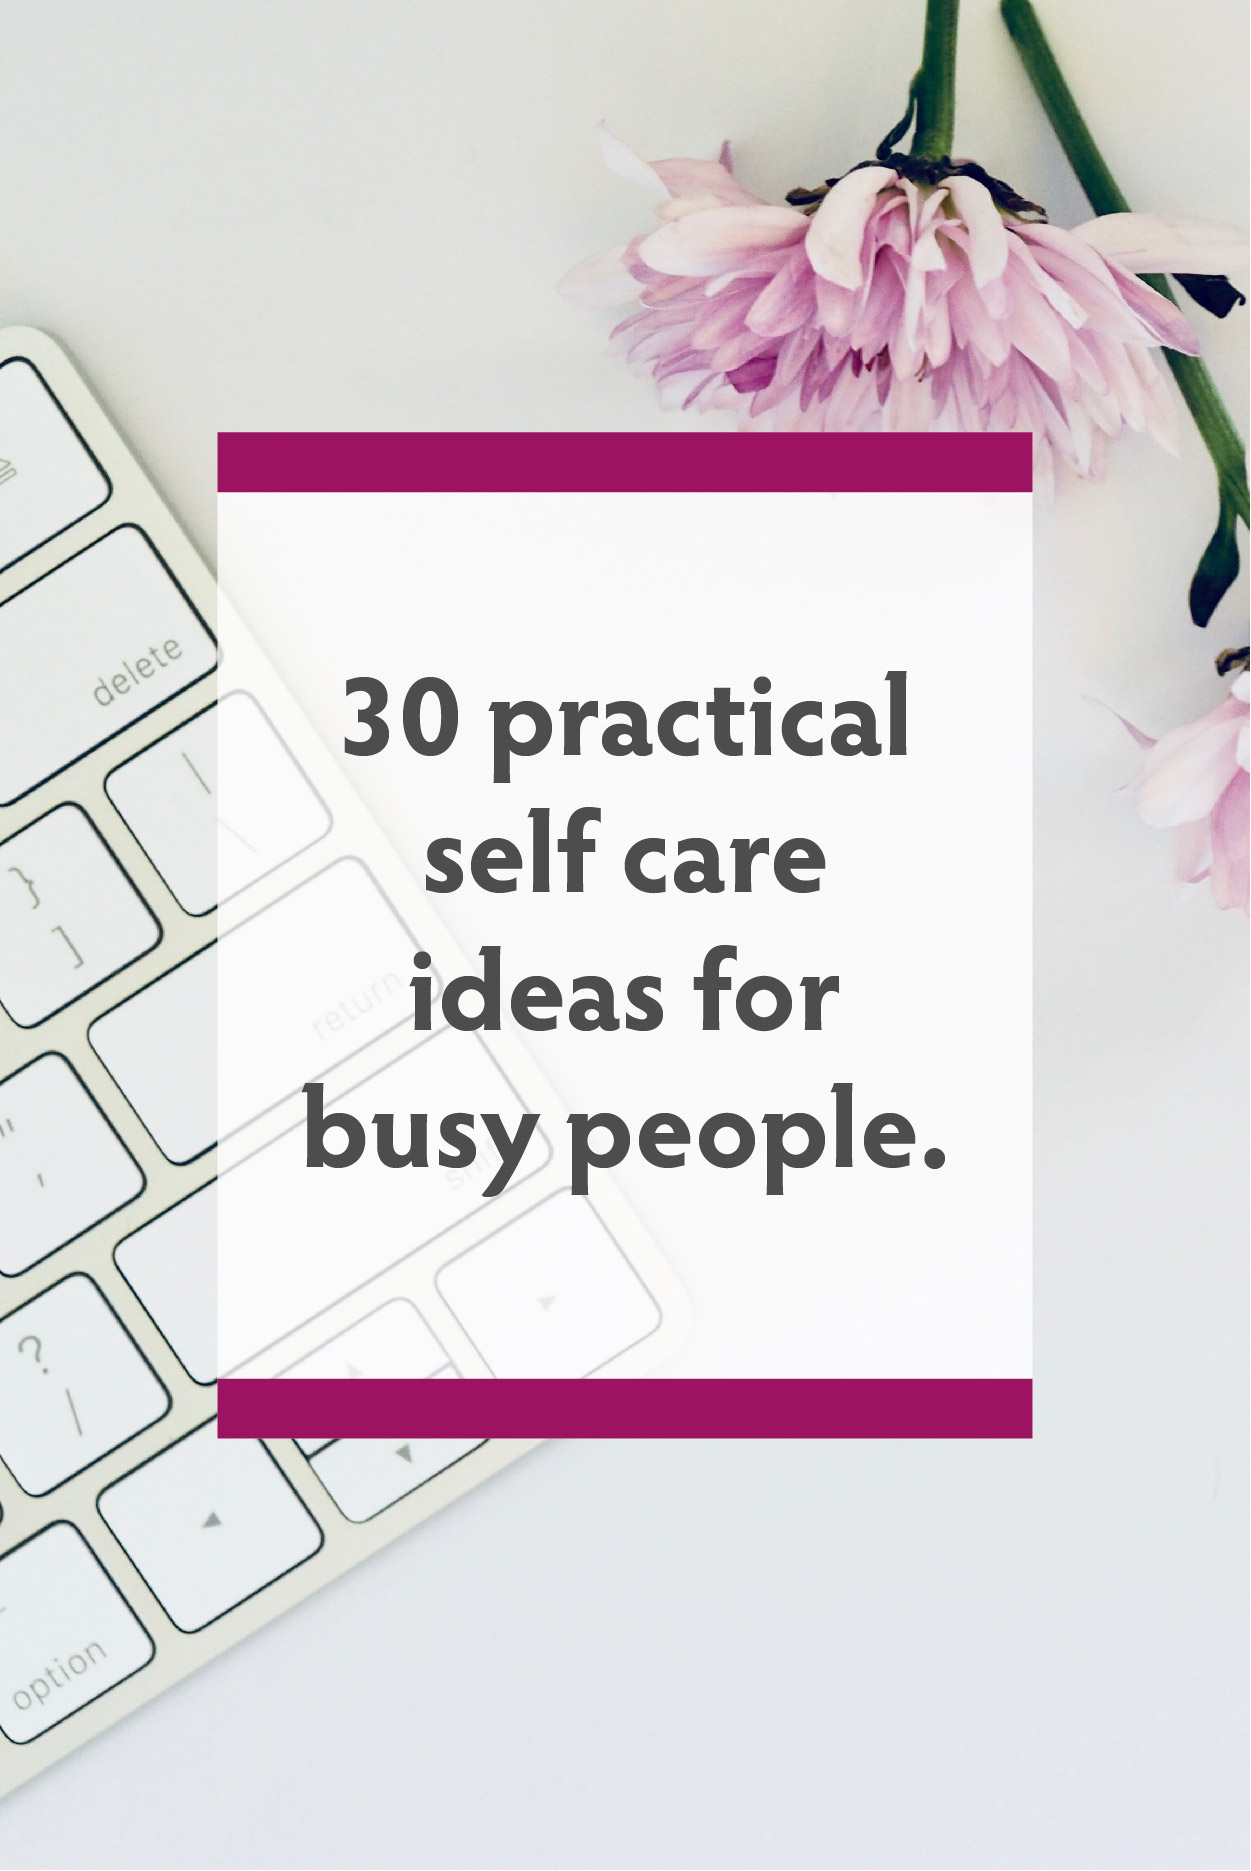 30 ways to practice self care to lower stress and increase your happiness - Graphic Design Coffs Harbour, Designed By Jess